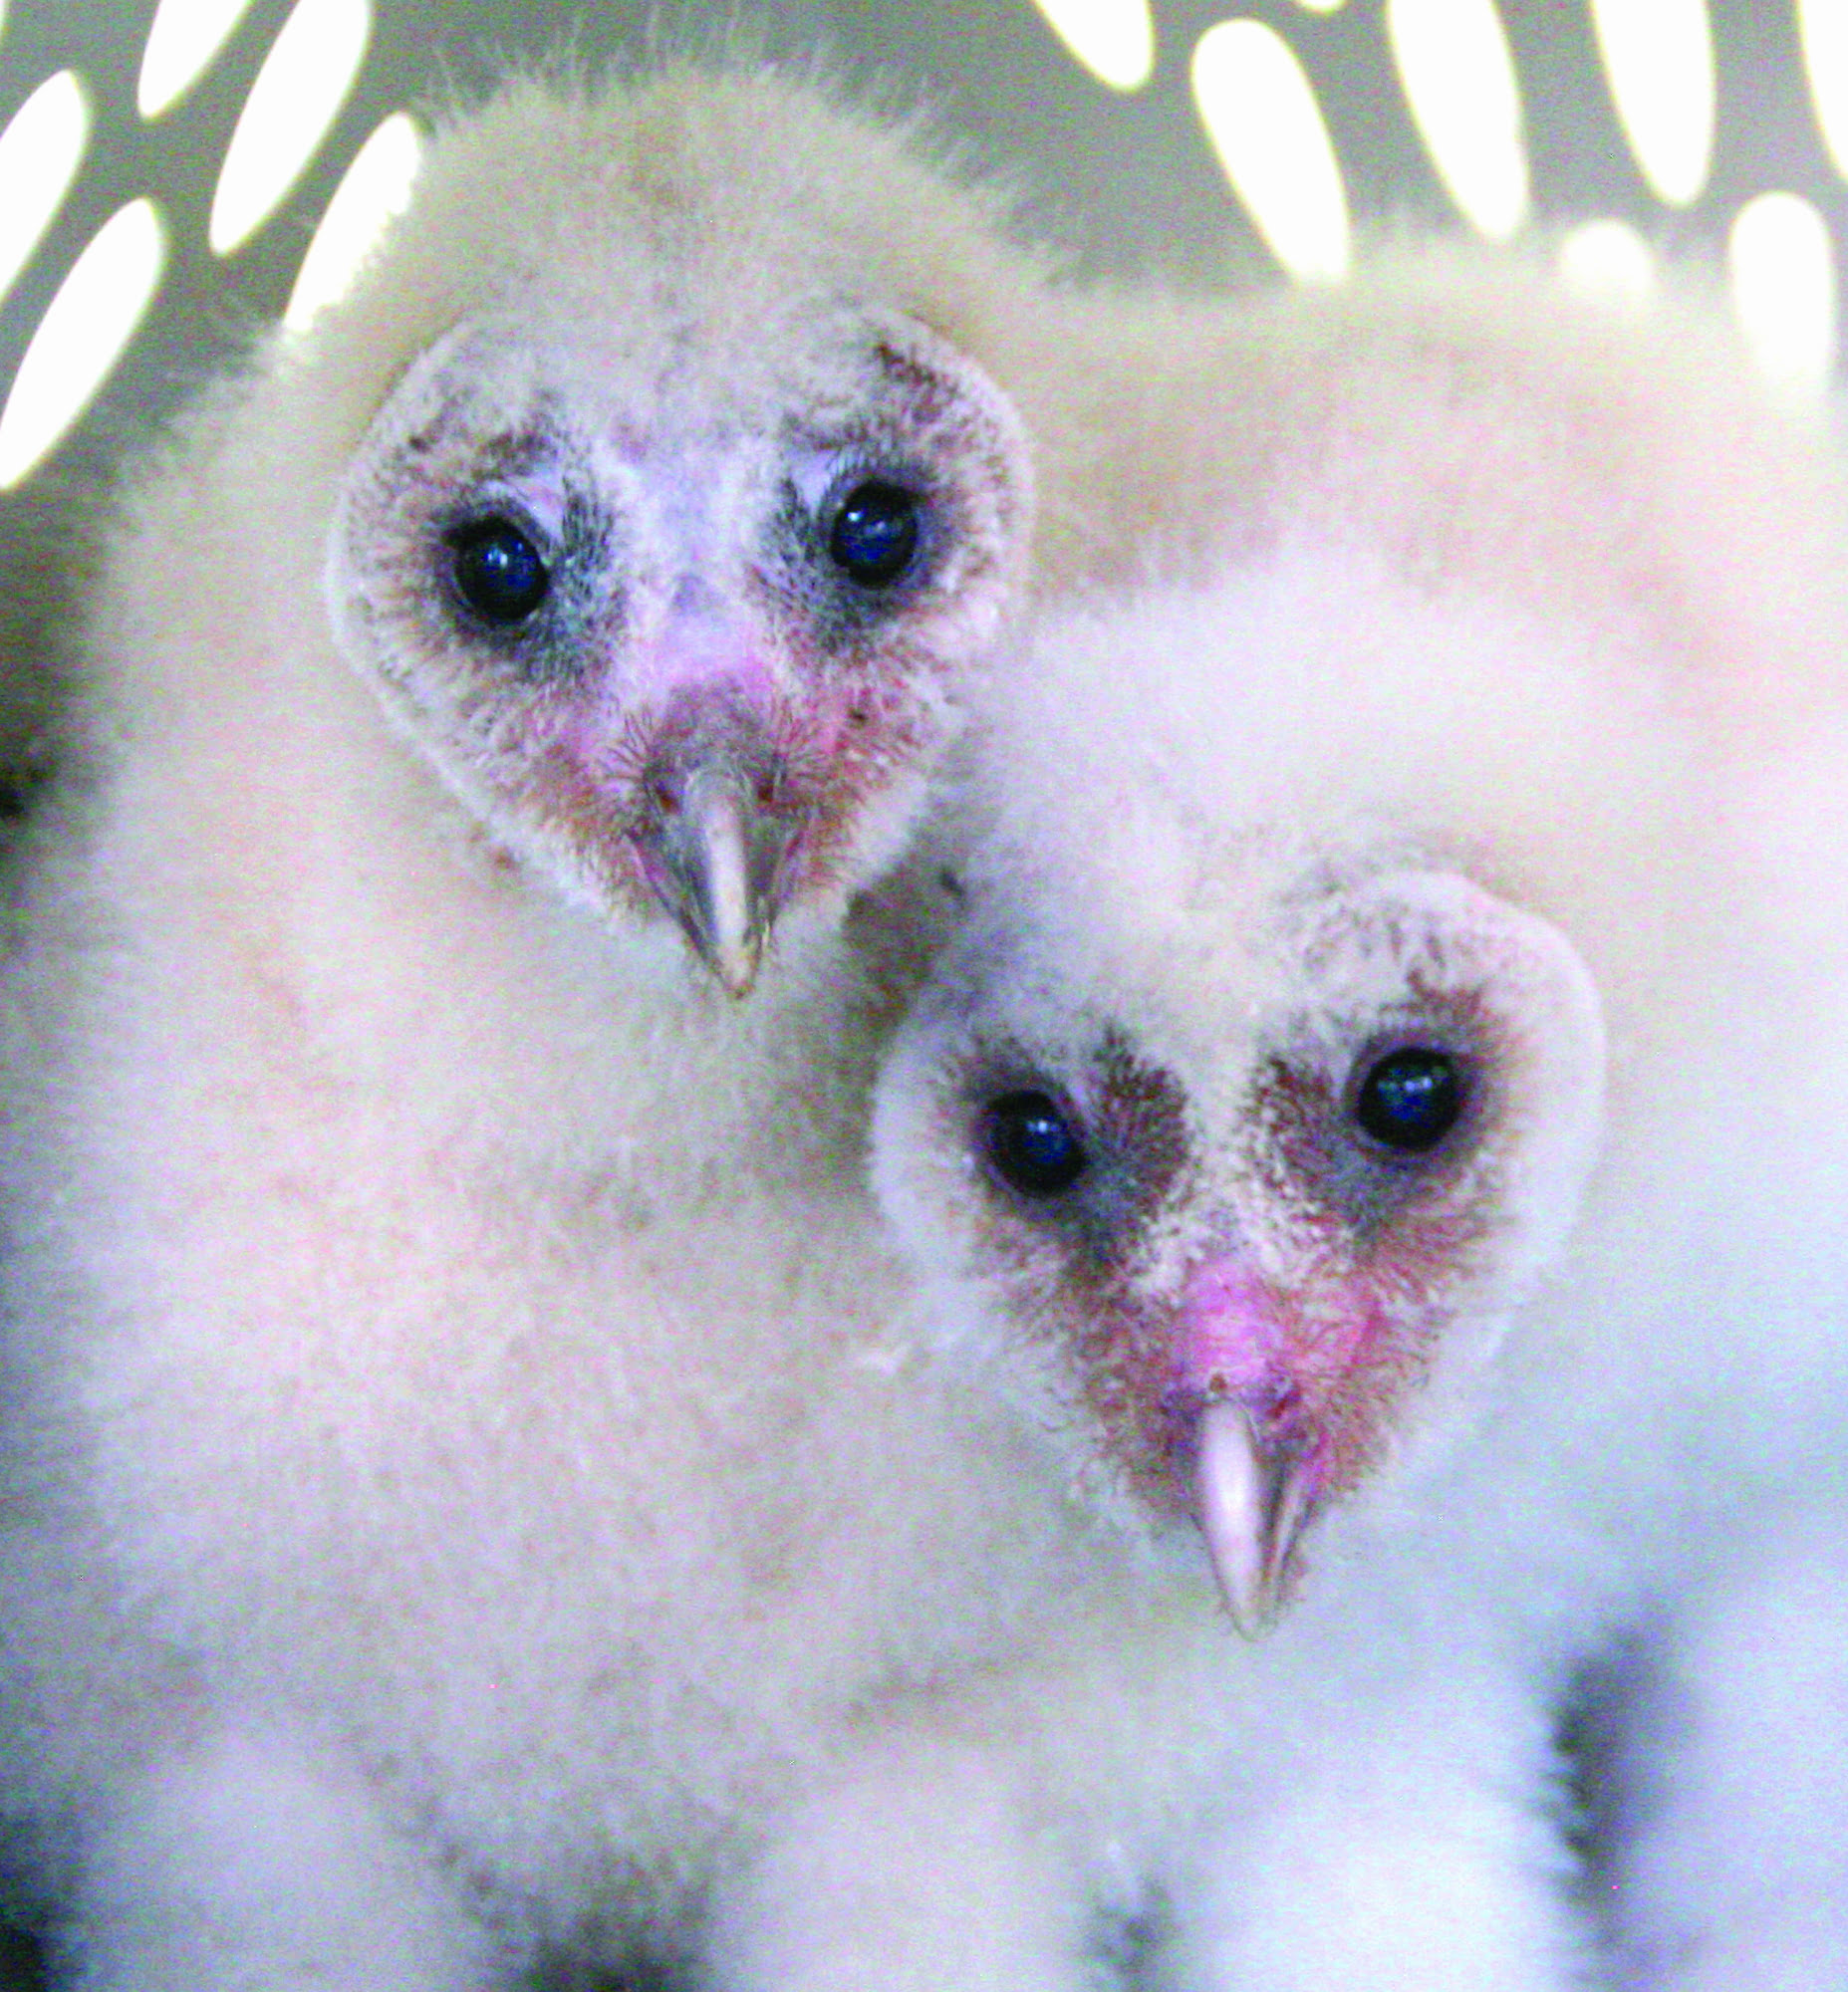 South Mountain student rescues owlets